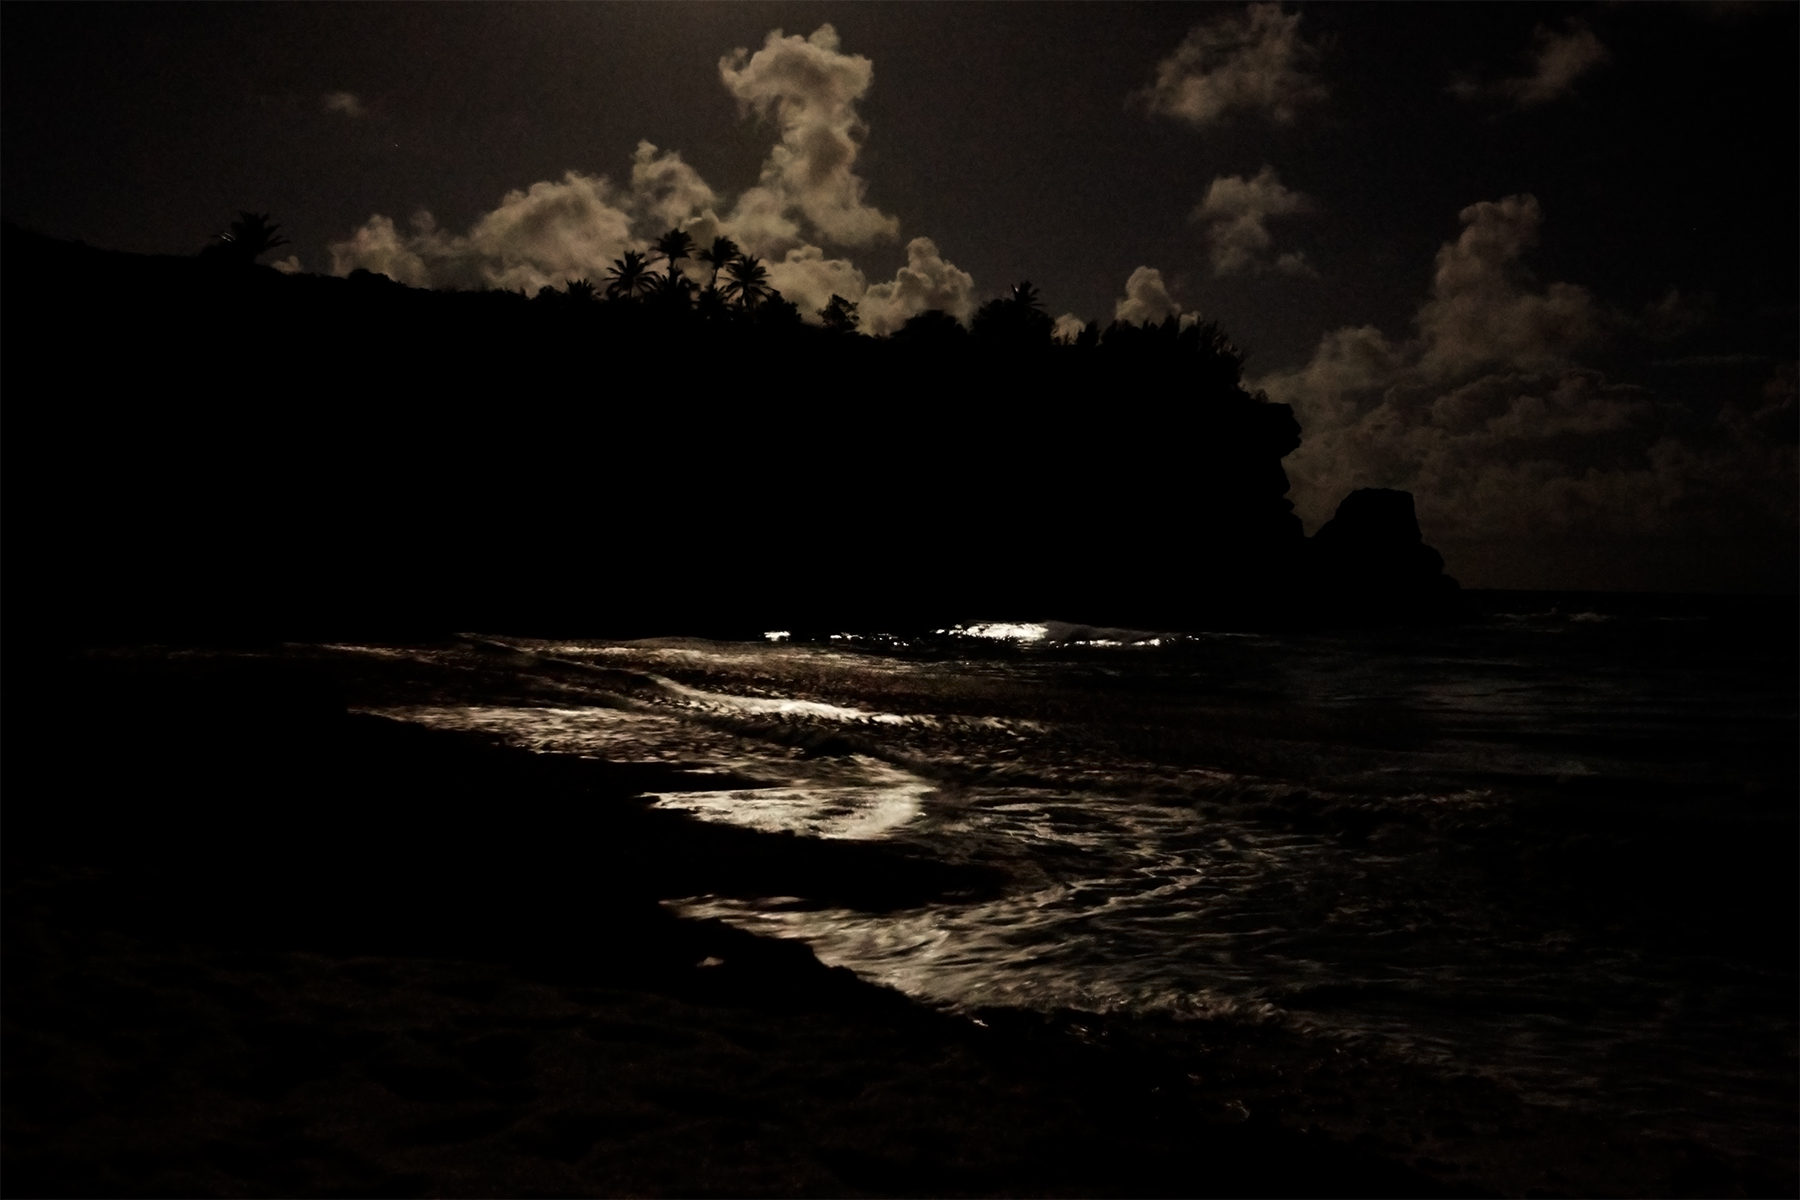 Full moon reflecting on the waves